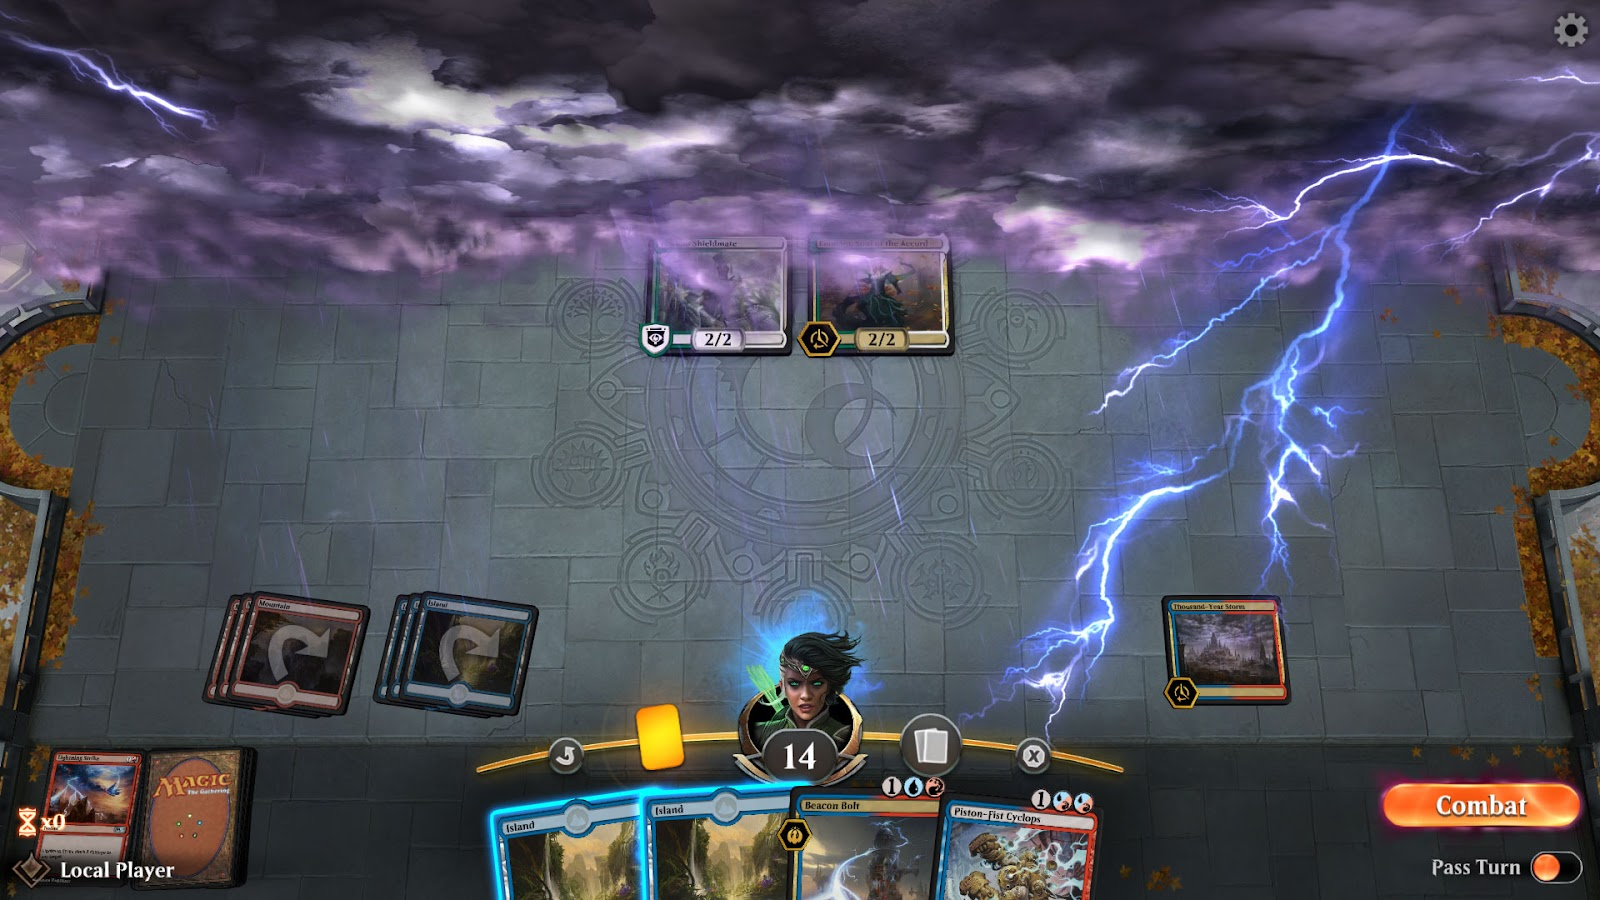 A game of Magic: the Gathering Arena